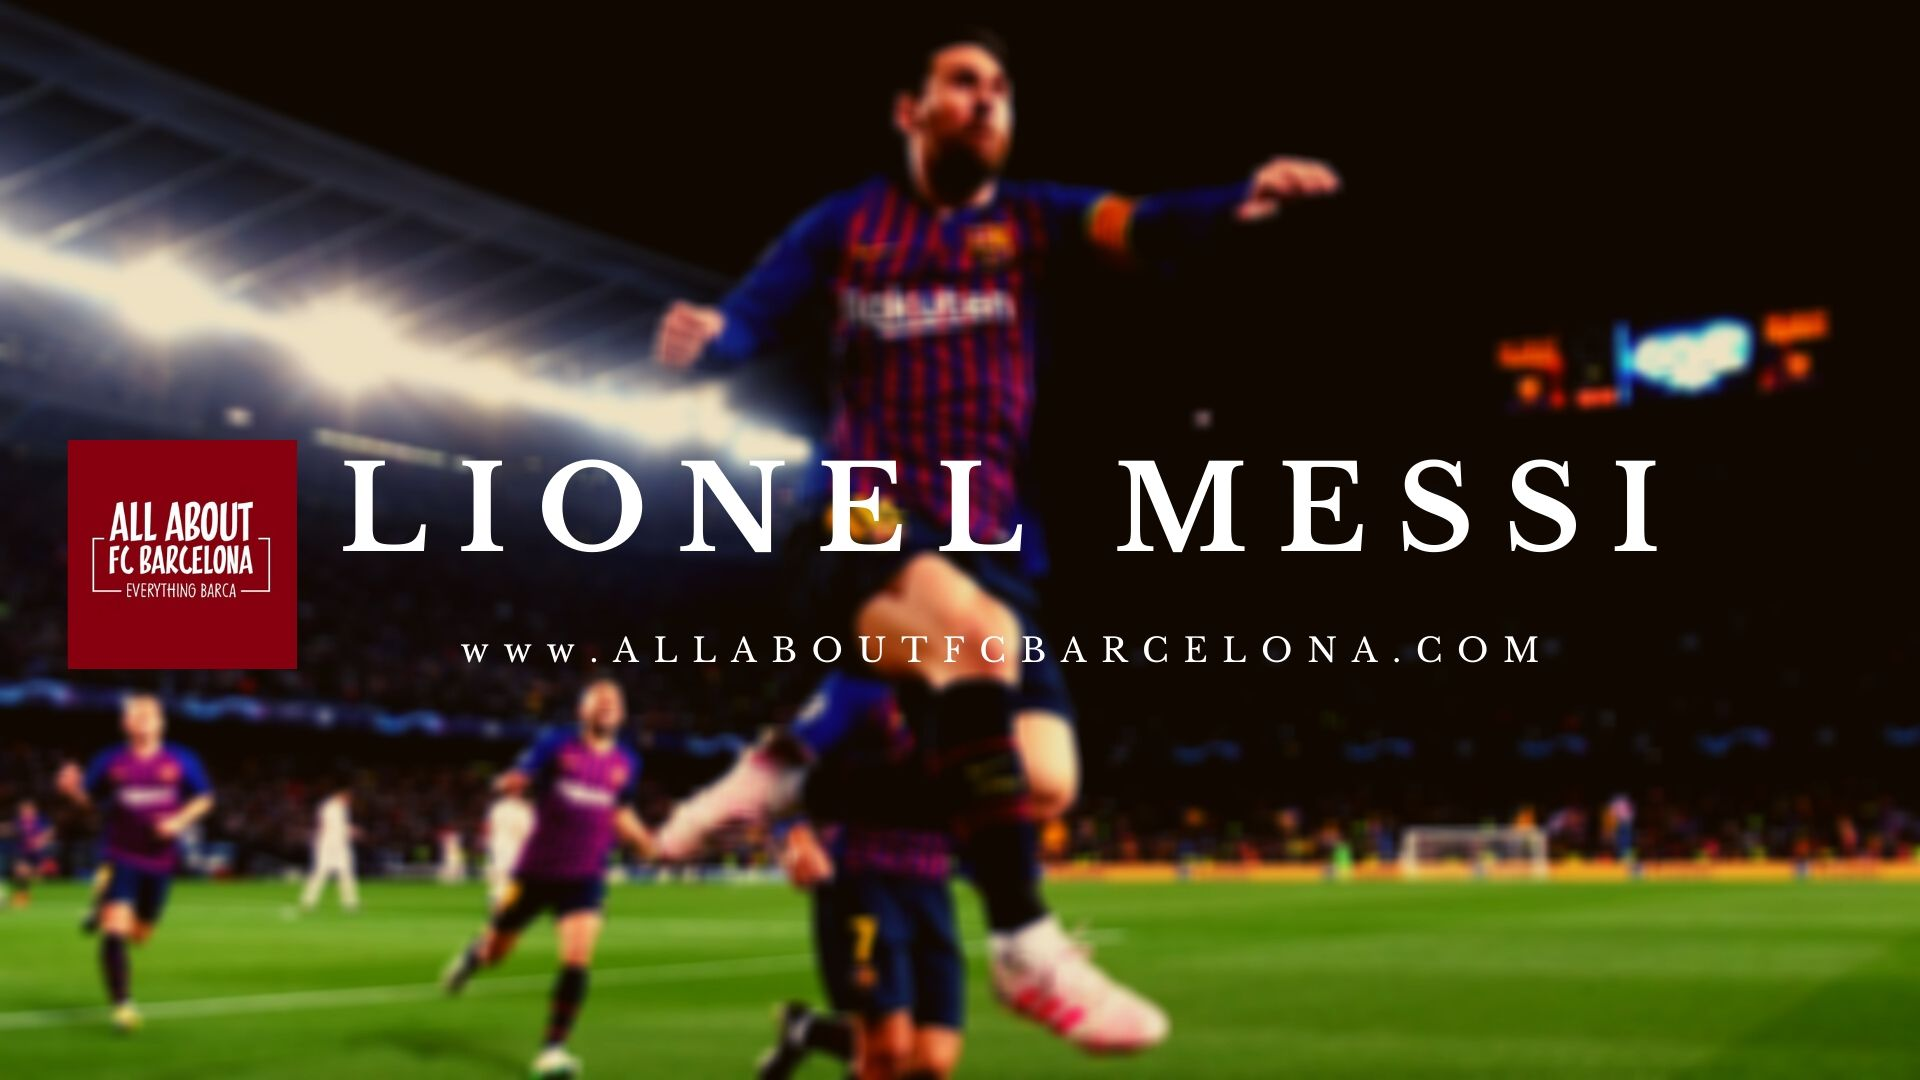 Lionel Messi Gifs against Bayern Munich